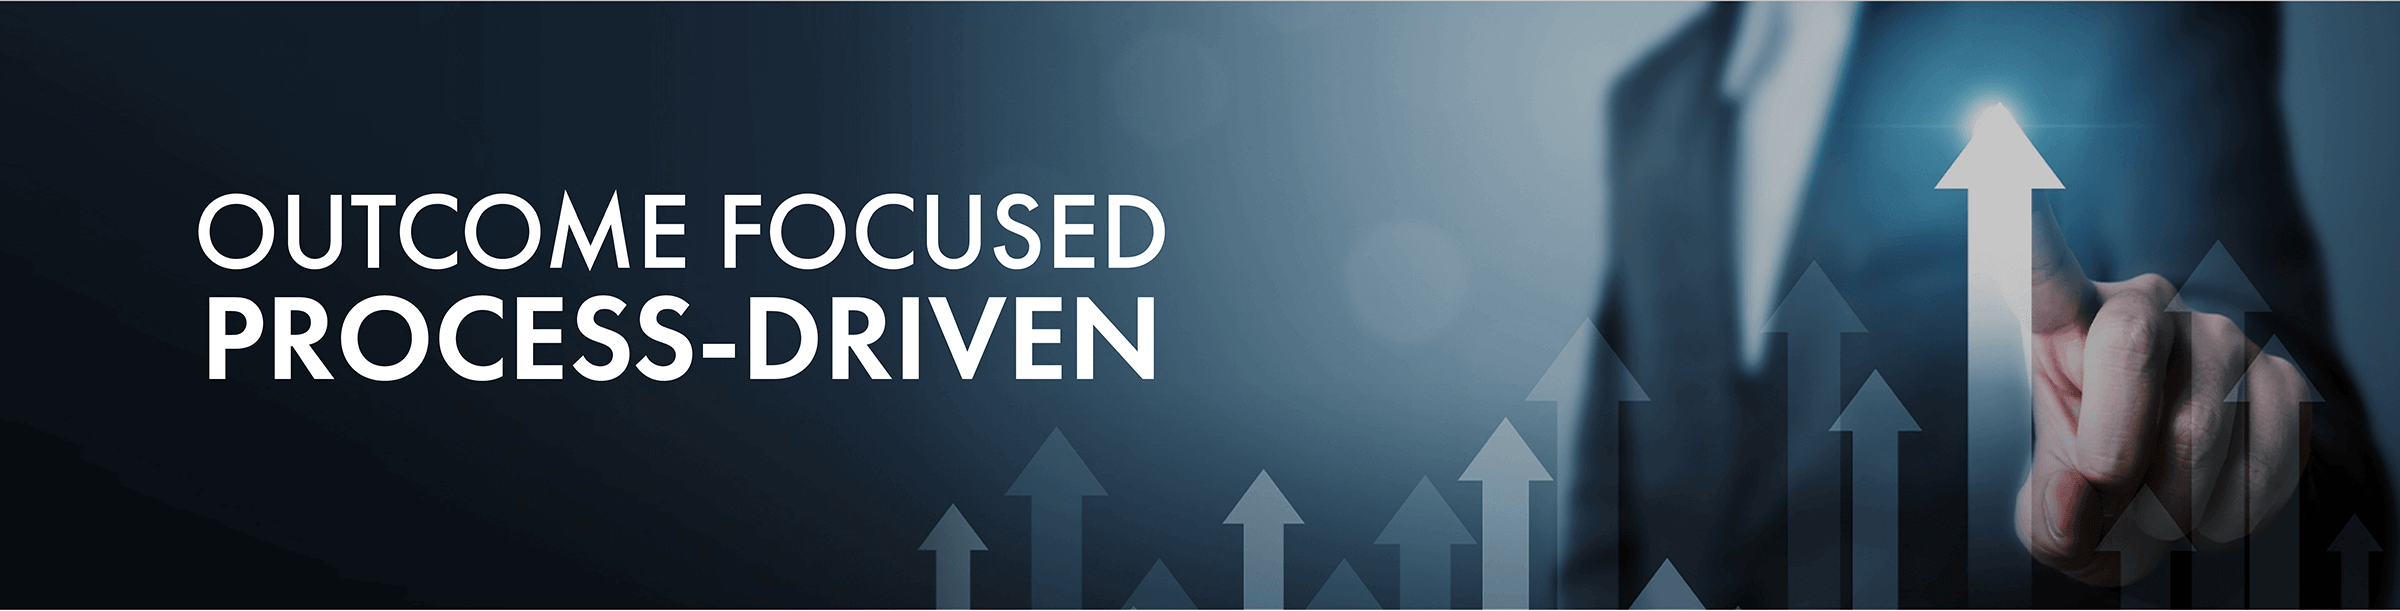 OUTCOME FOCUSED PROCESS-DRIVEN